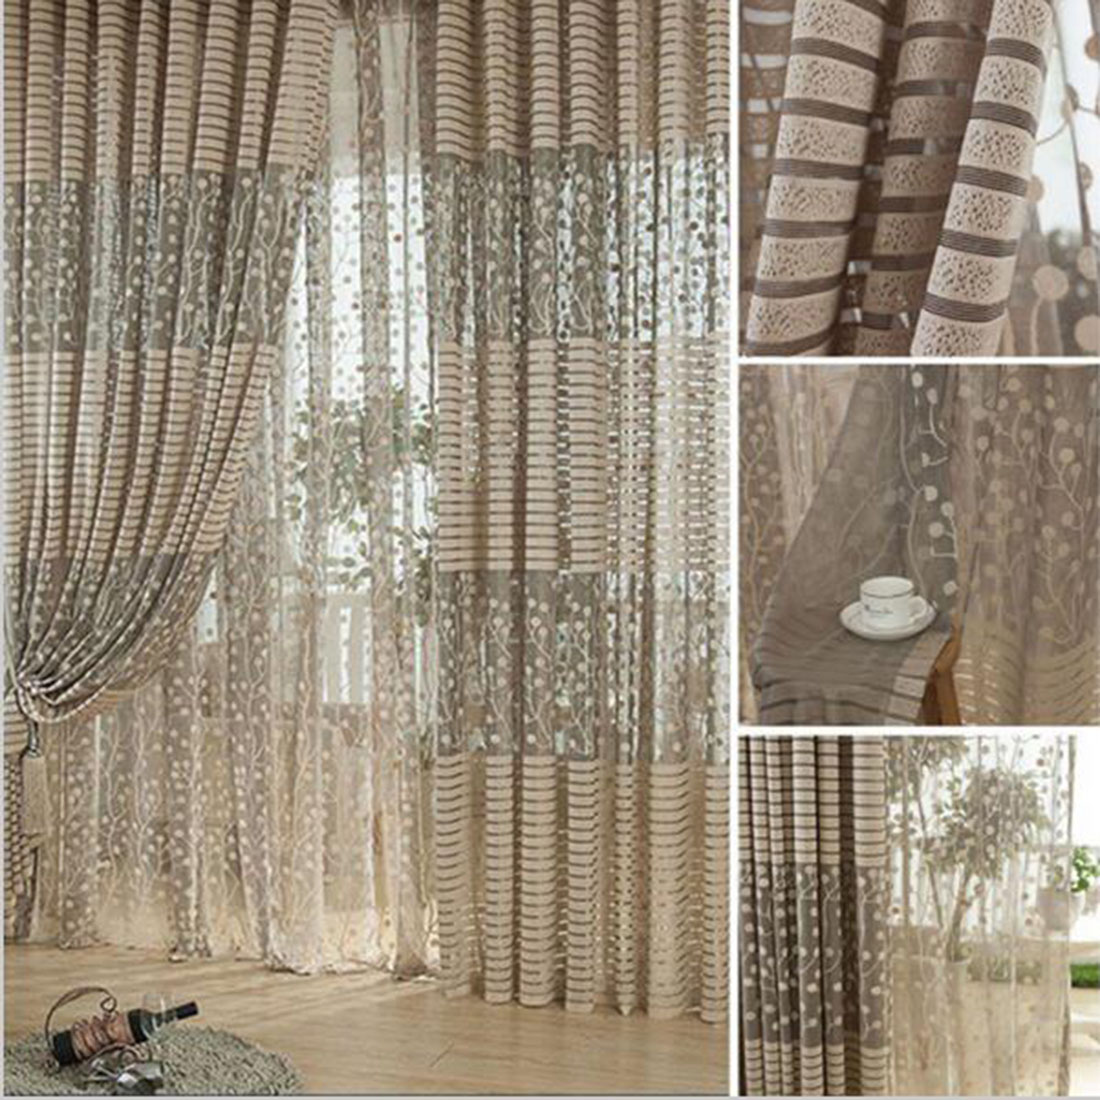 Sheer curtains with patterns - Warp Knitting Leaf Pattern Tulle Window Curtain Sheer Curtains For Livingroom Bedroom Jacquard Embroidered Curtain Panel